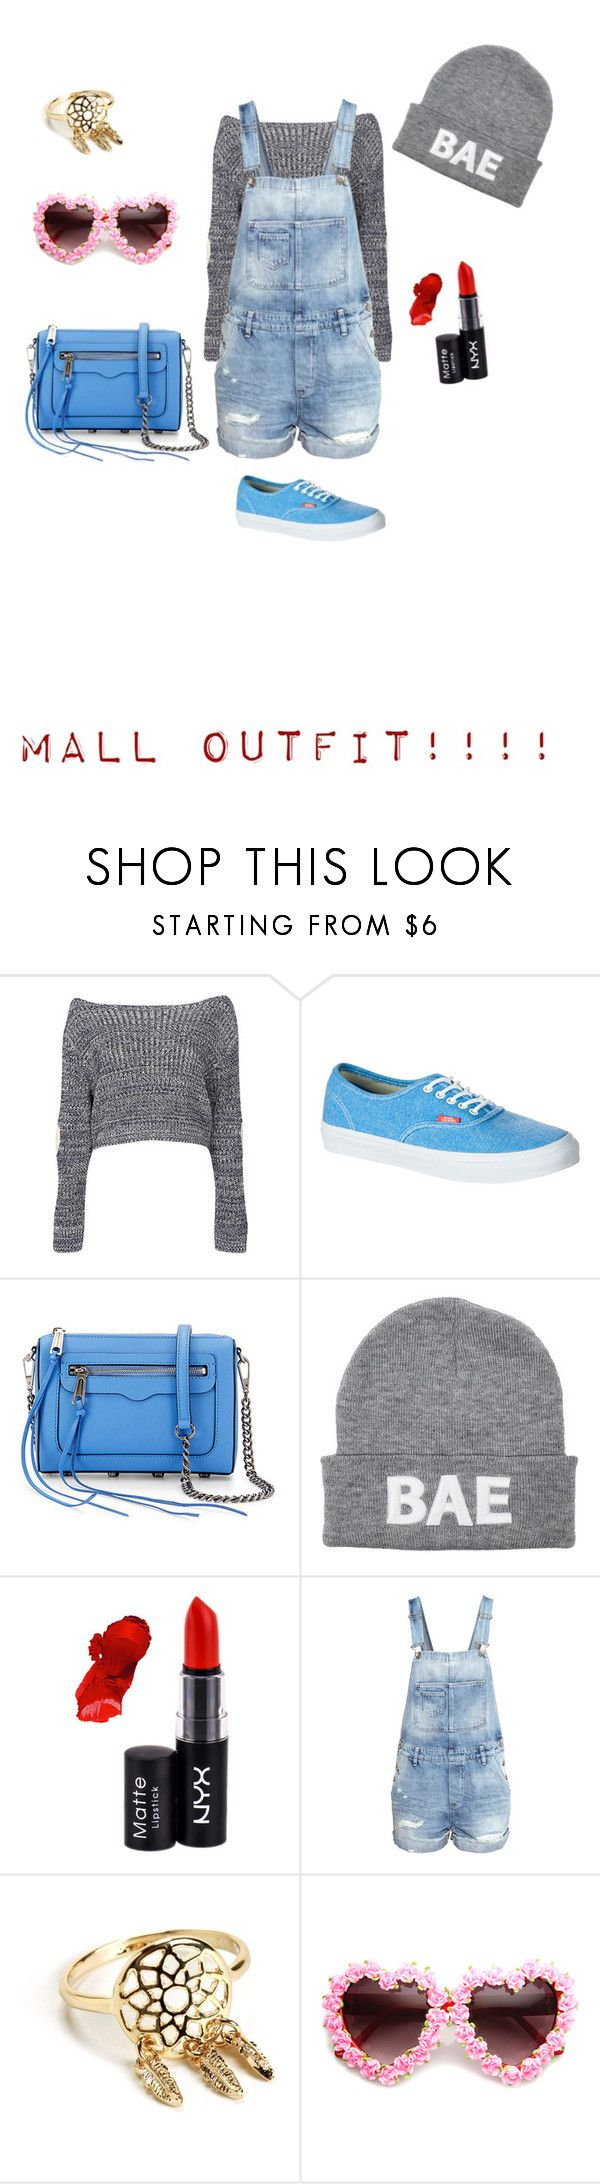 """""""Another mall outfit"""" by paniceverywhere ❤ liked on Polyvore featuring Boohoo, Vans, Rebecca Minkoff, NYX and H&M"""